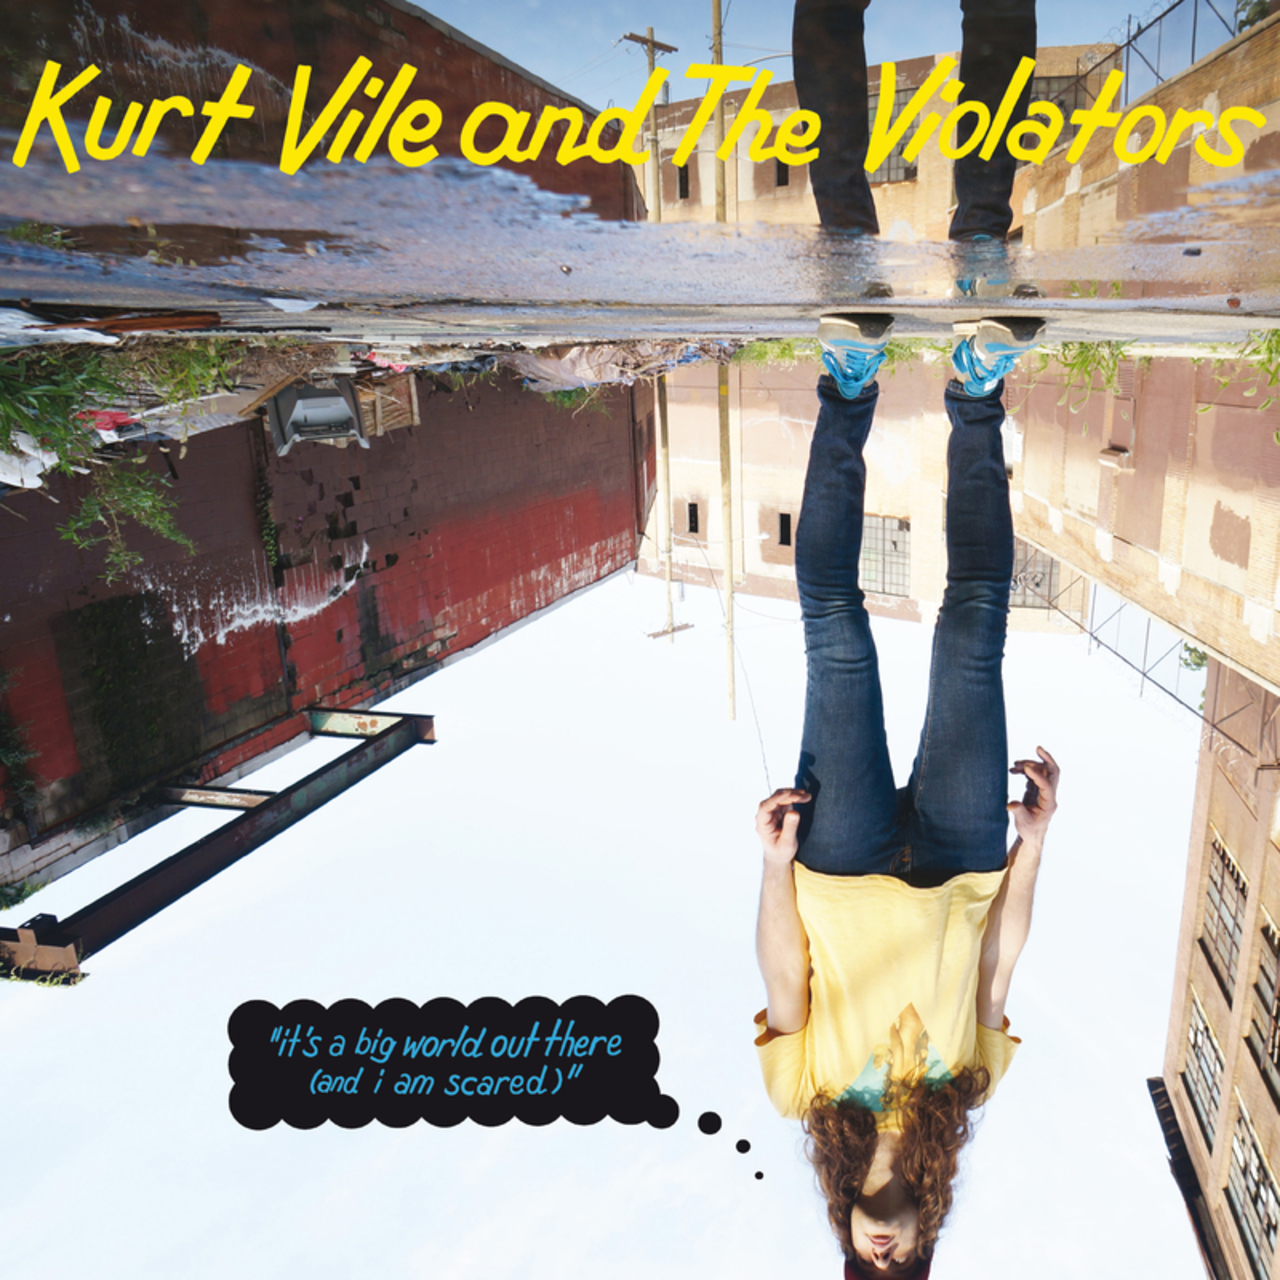 KURT VILE & THE VIOLATORS – IT'S A BIG WORLD OUT THERE (AND I AM SCARED) (EP)